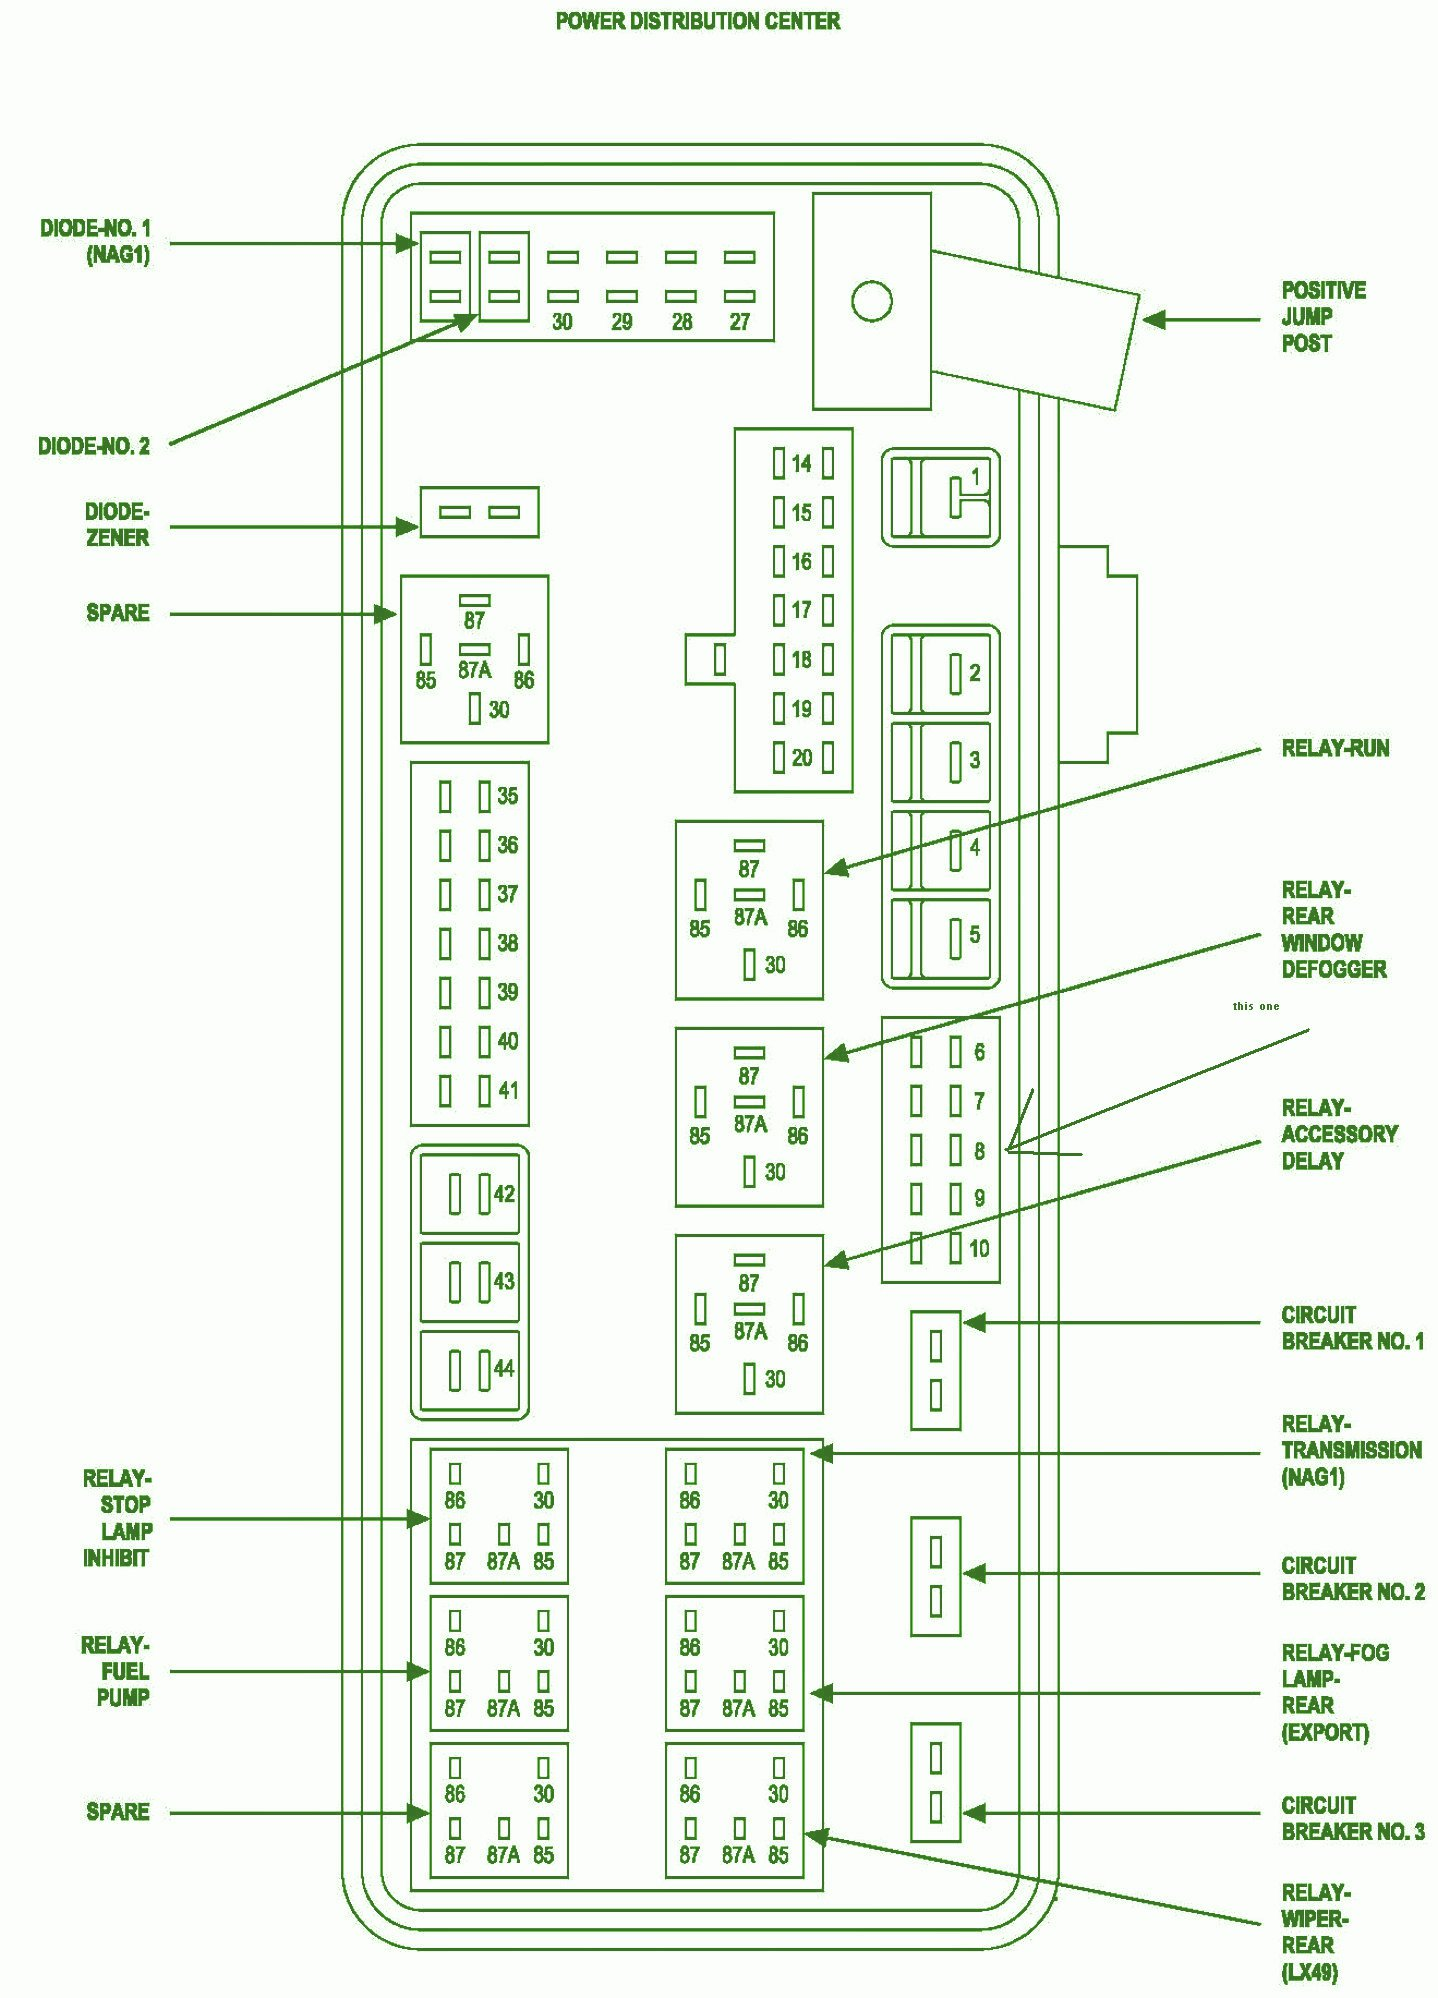 2007 Caliber Fuse Box Diagram Wiring Libraries 02 Dakota 2009 Dodge Diagrams Scematic2009